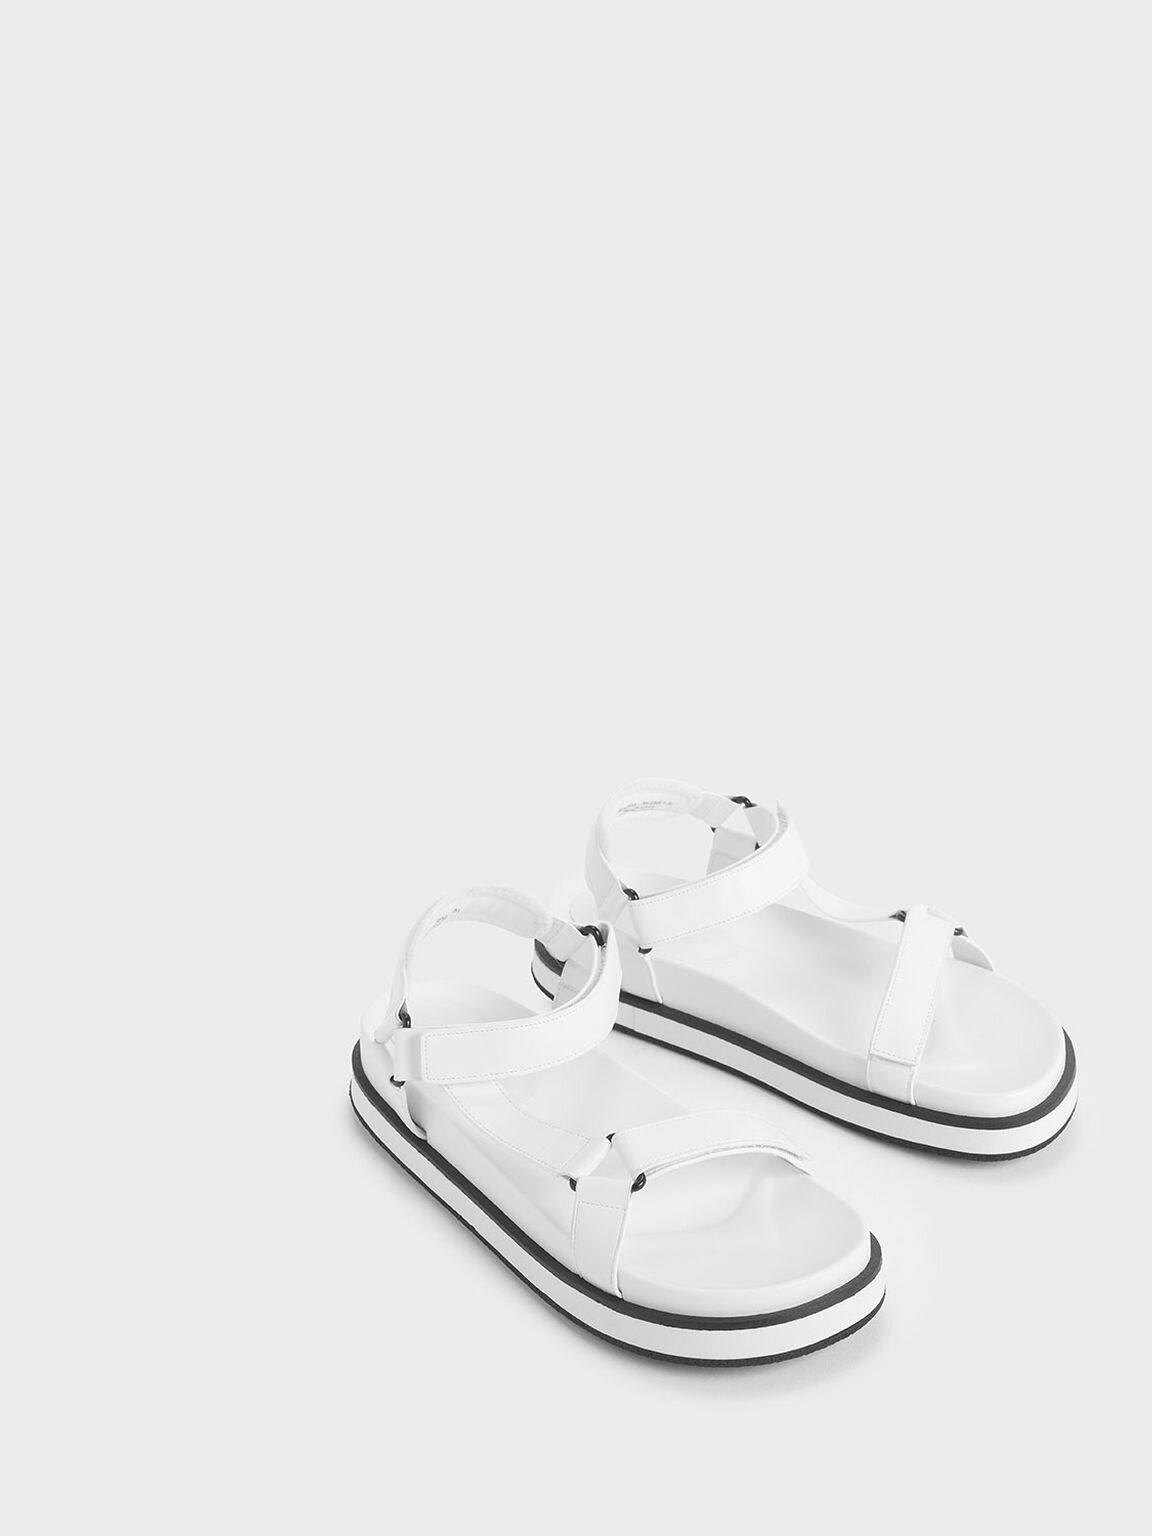 Two-Tone Strap Sandals, White, hi-res